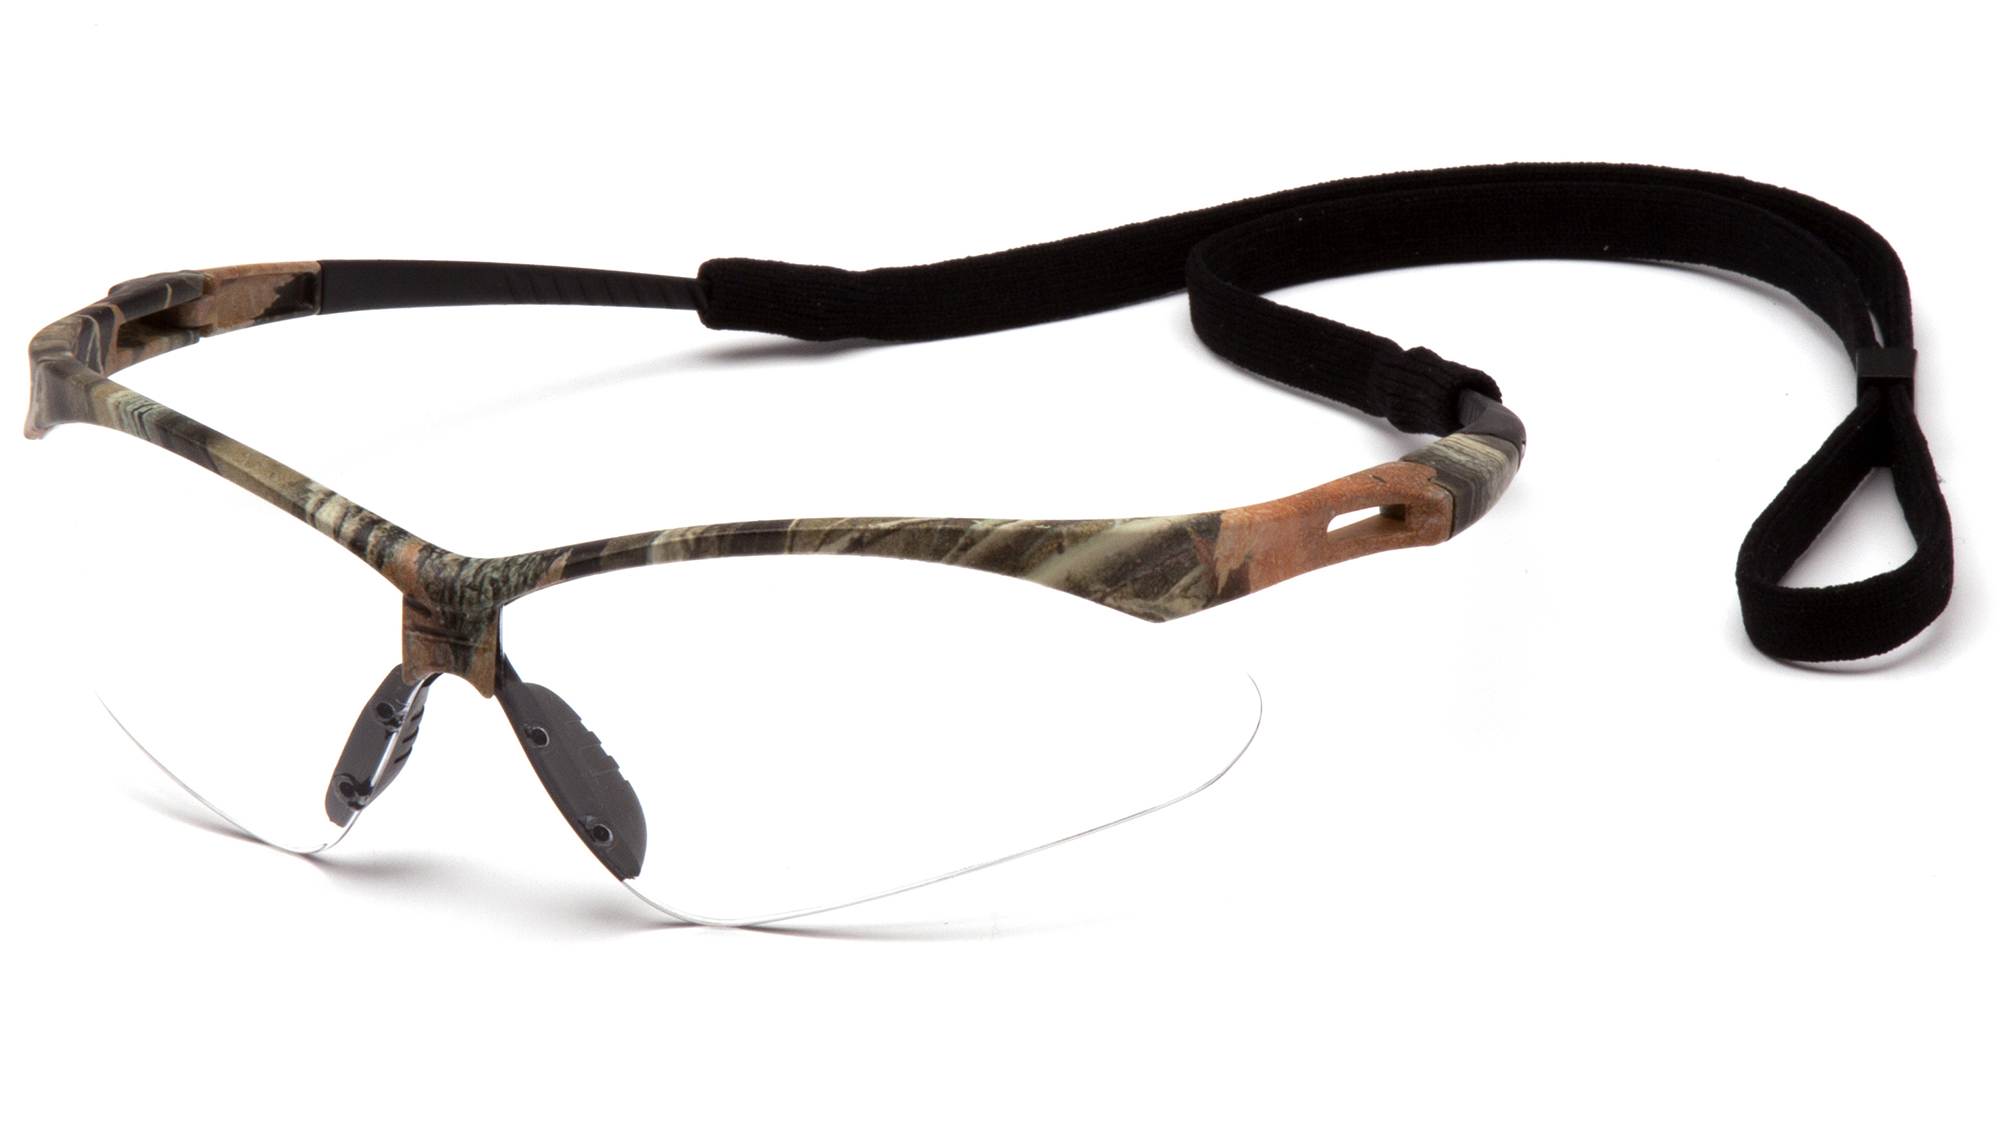 PMXTREME Safety Glasses - Camo Frames Clear Lens